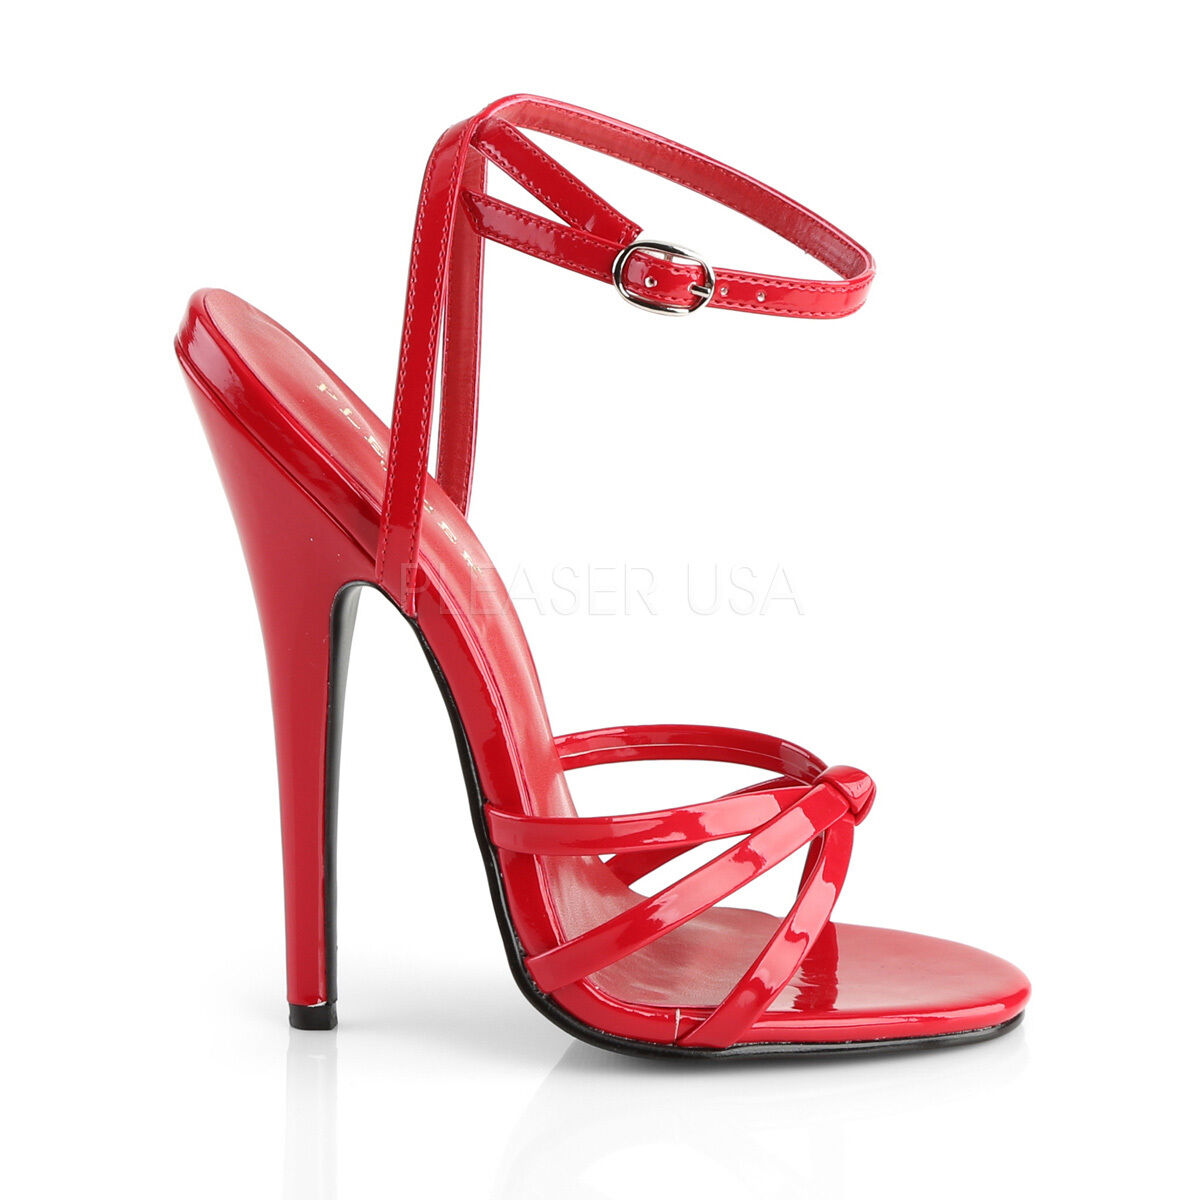 Domina shoes Red Patent High 6 6 6  Spike Heels Ankle Strap Stiletto shoes 108 00e337